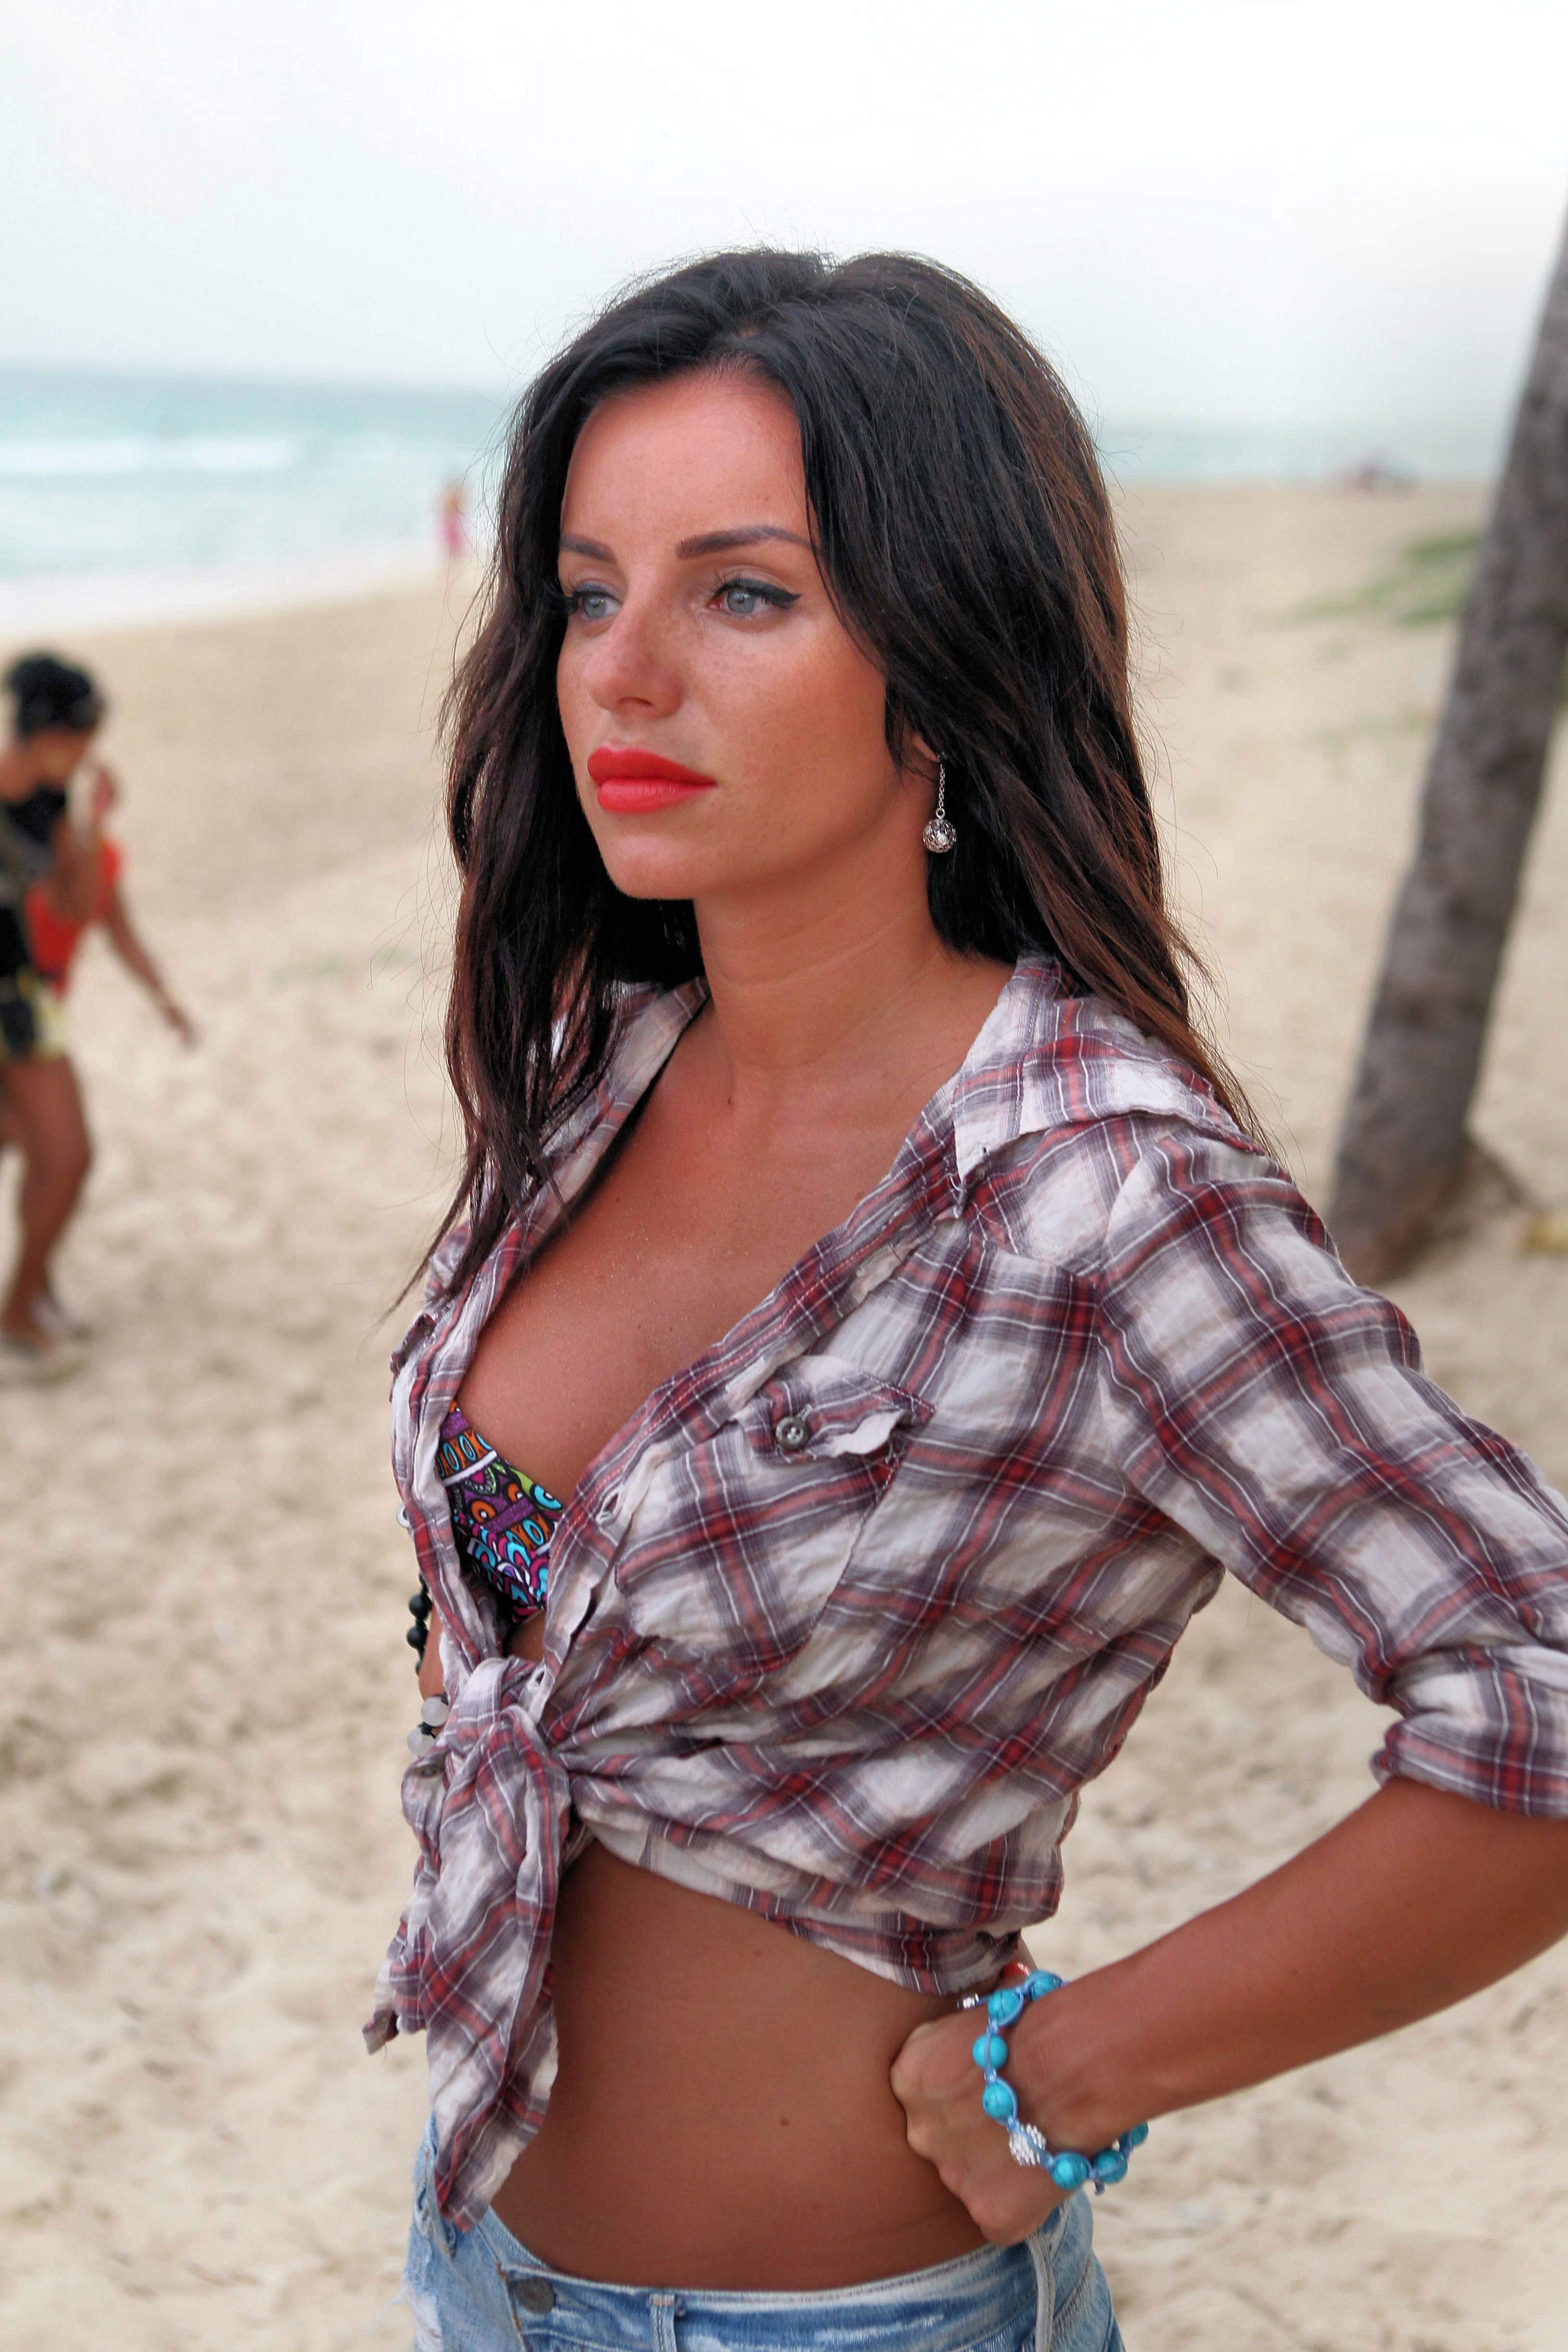 julia volkova photo 3 of 75 pics wallpaper   photo